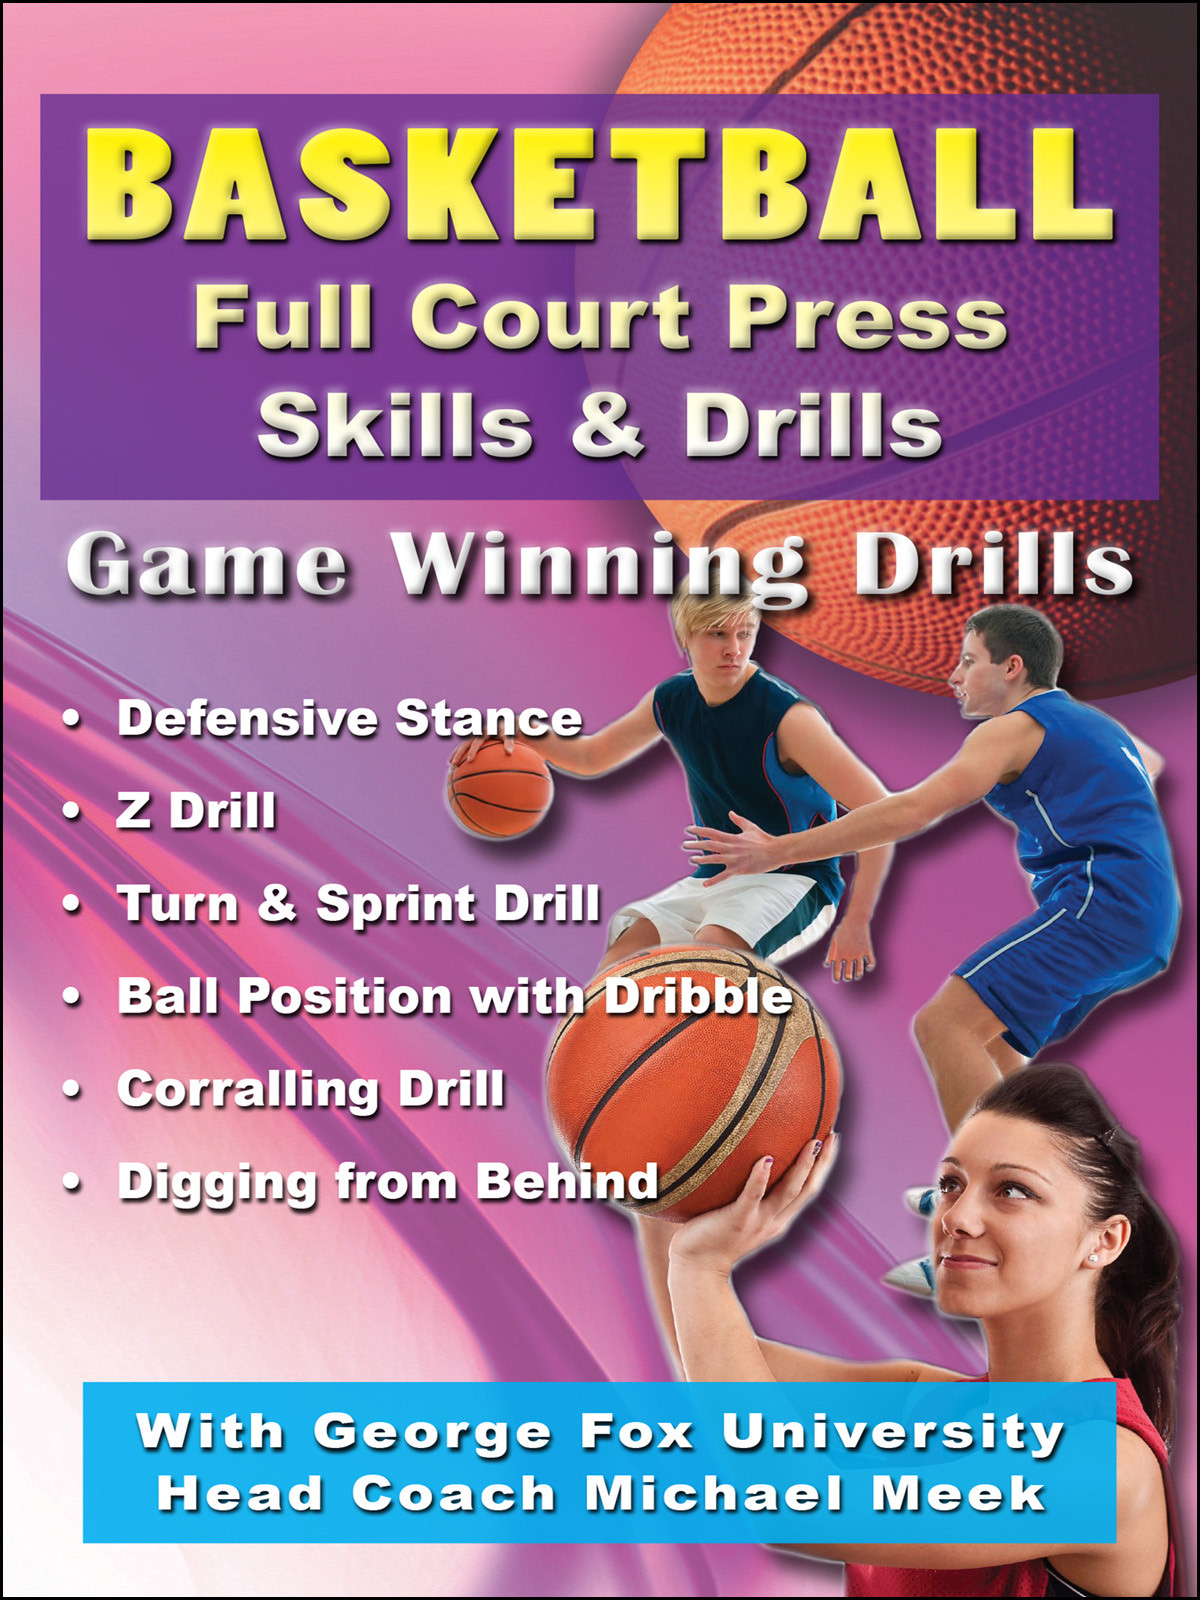 K4206 - Basketball Full Court Press Skills and Drills